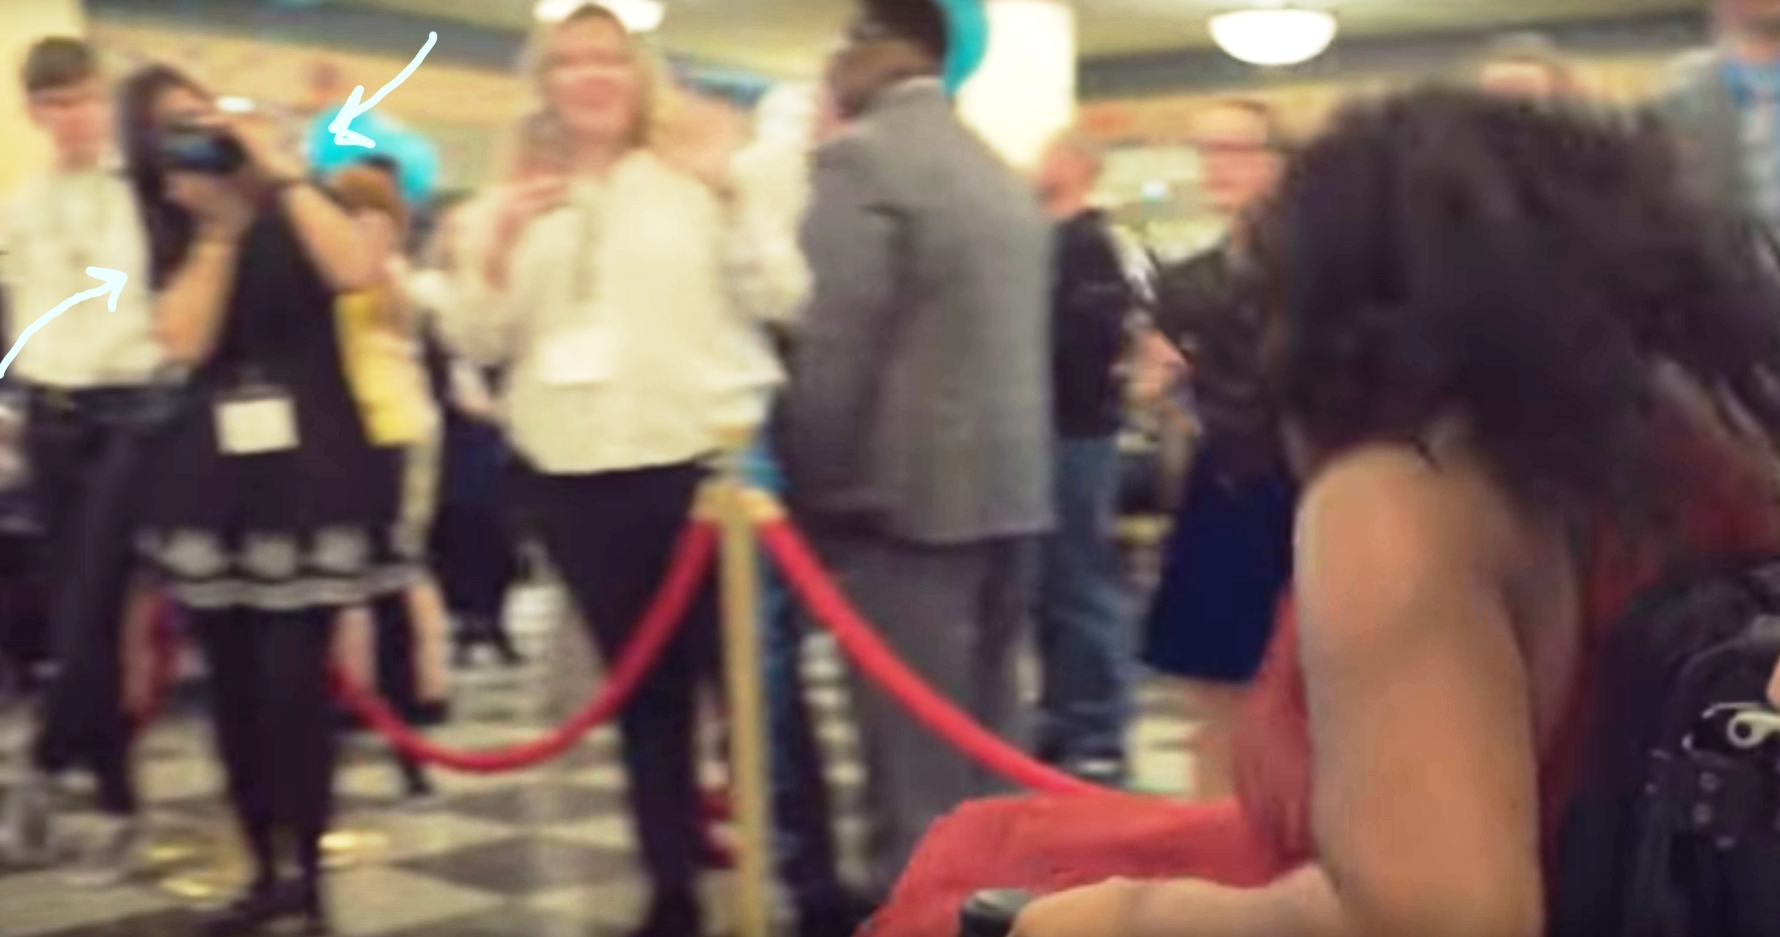 (I spotted a quick shot of me taking paparazzi pictures on the red carpet 1:23 minutes in to the video!)